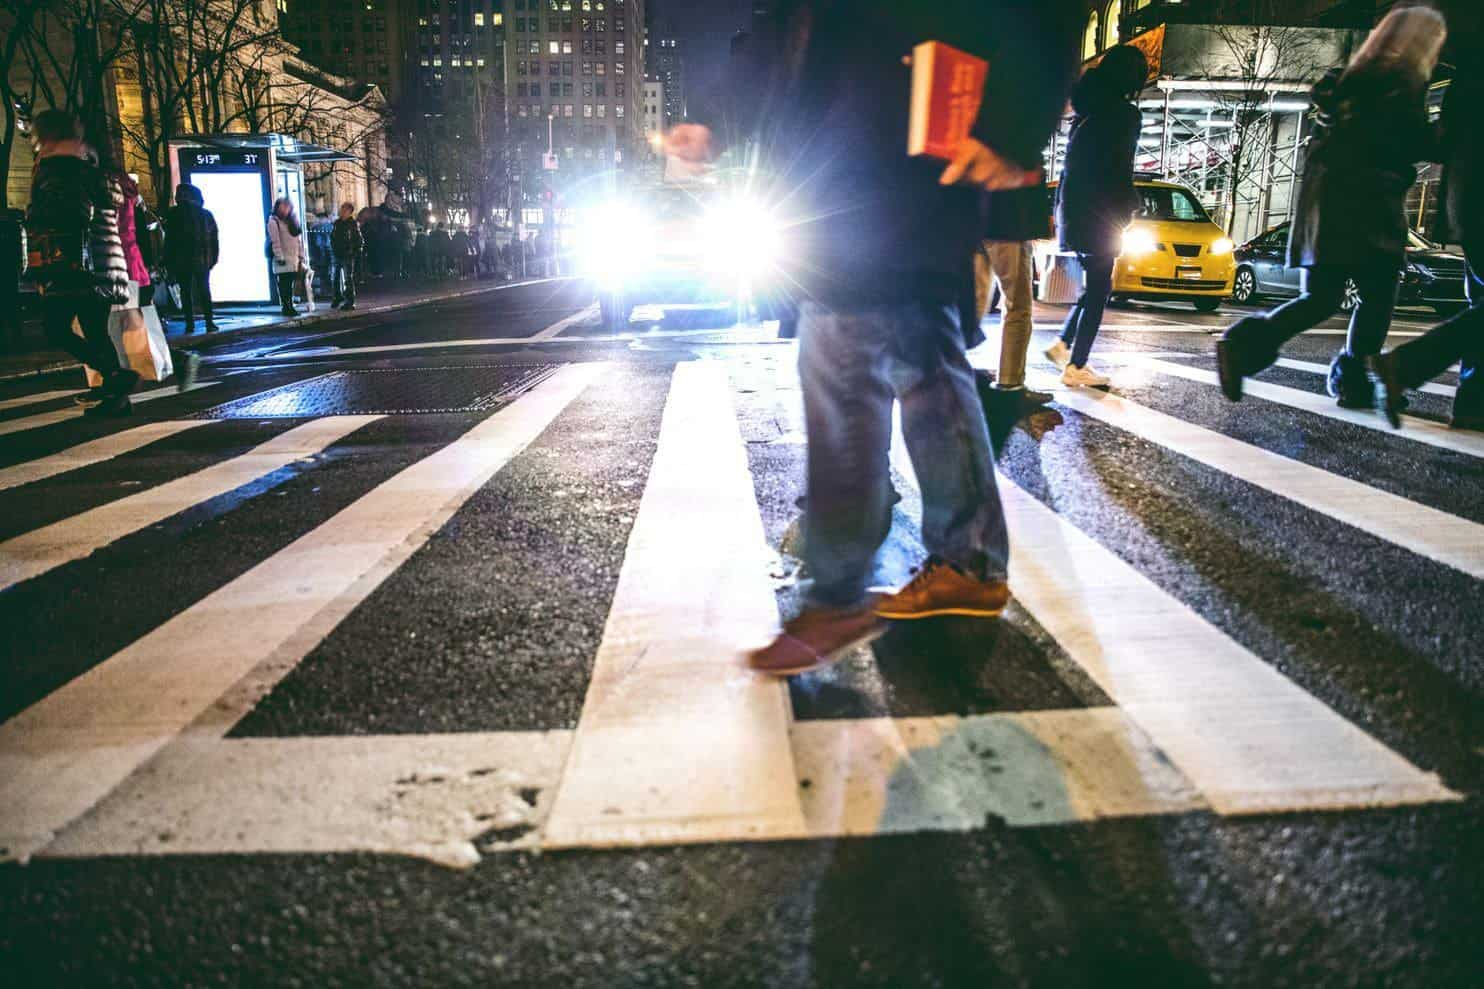 Thousands of inebriated pedestrians die each year in traffic accidents